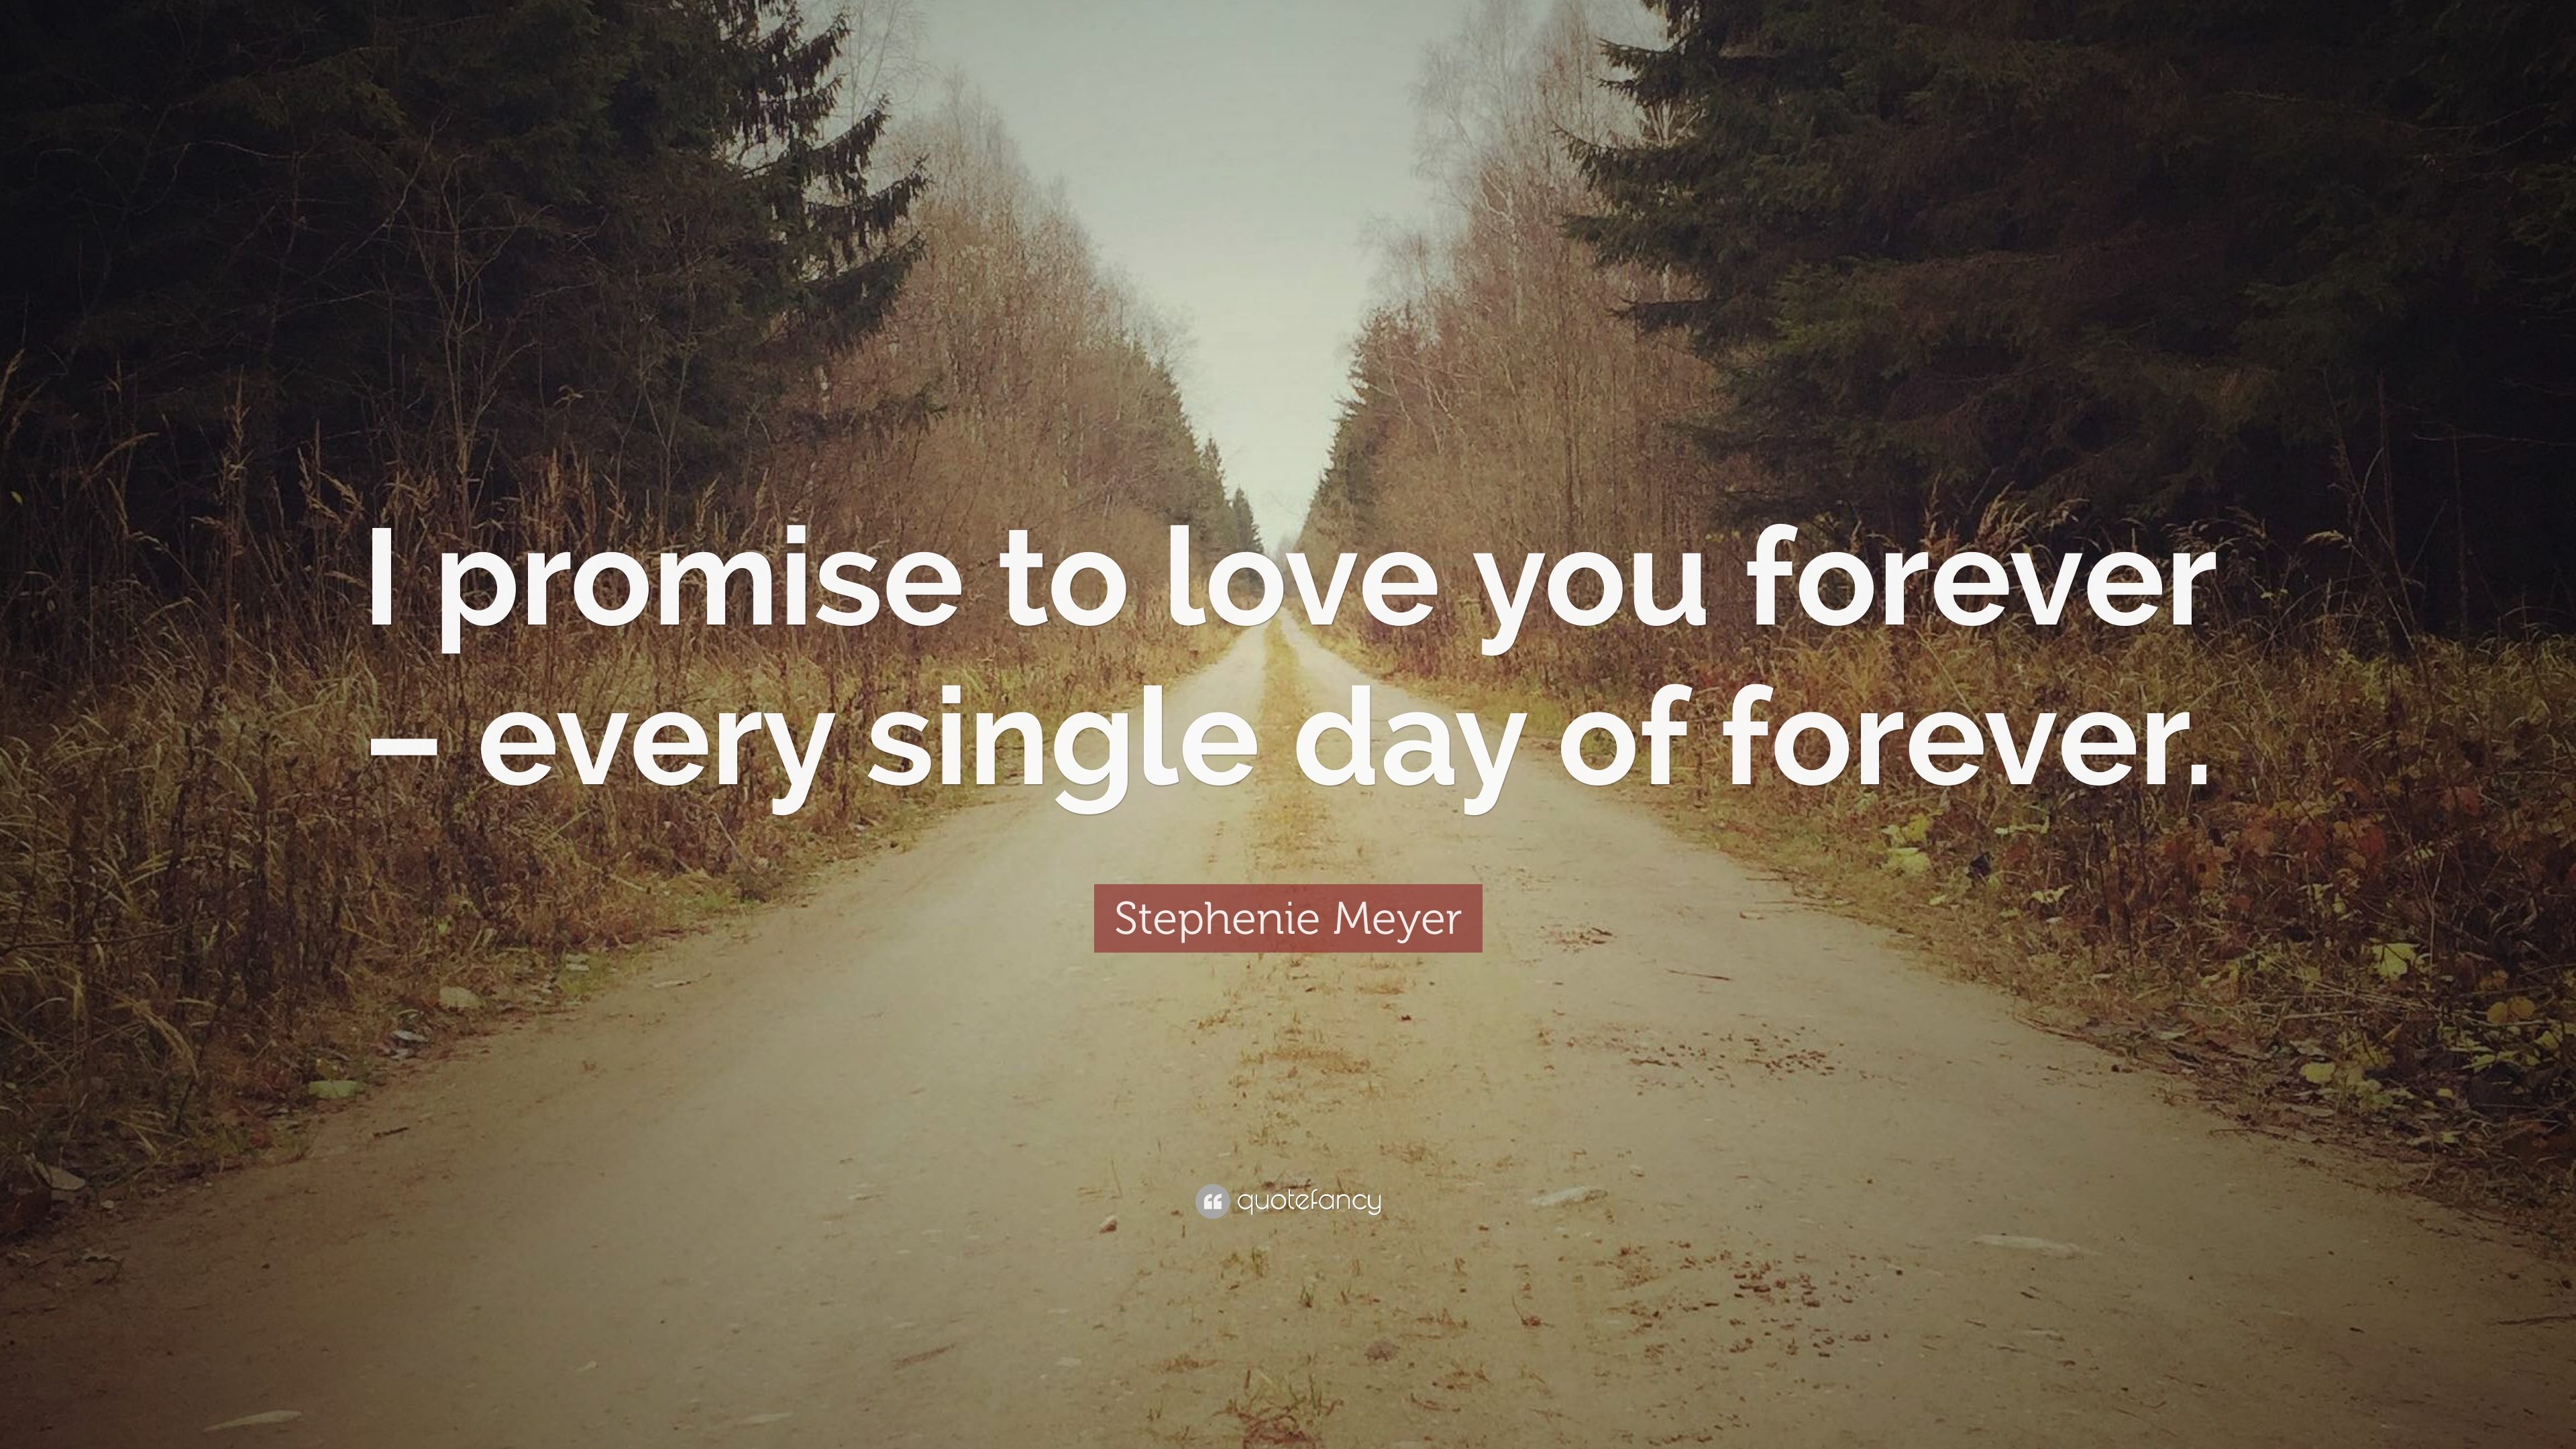 stephenie meyer quote i promise to love you forever every single